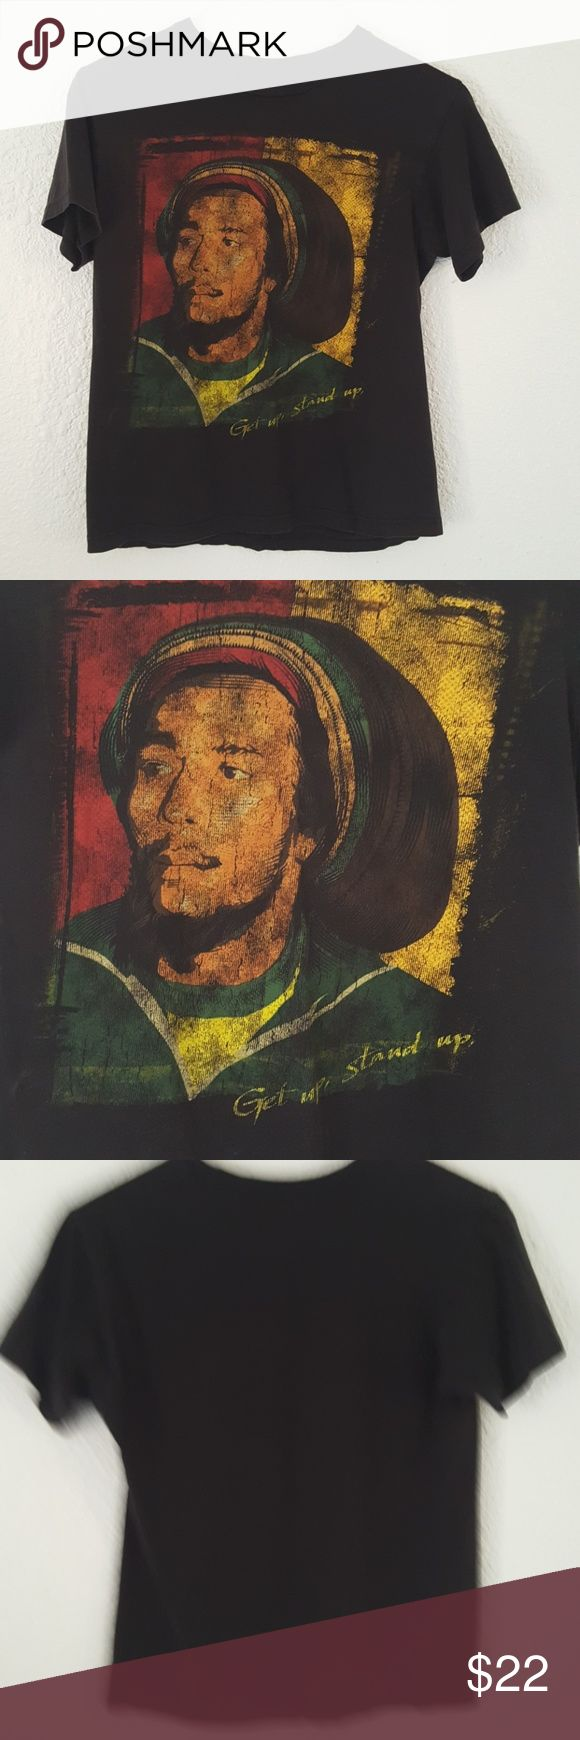 "Vintage Bob Marley Rasta Graphic Tee T-shirt S Awesome vintage t- shirt. Features da man himself Bob Marley. Men's size small. Chest 34"", length 23"". Bob Marley Shirts Tees - Short Sleeve"